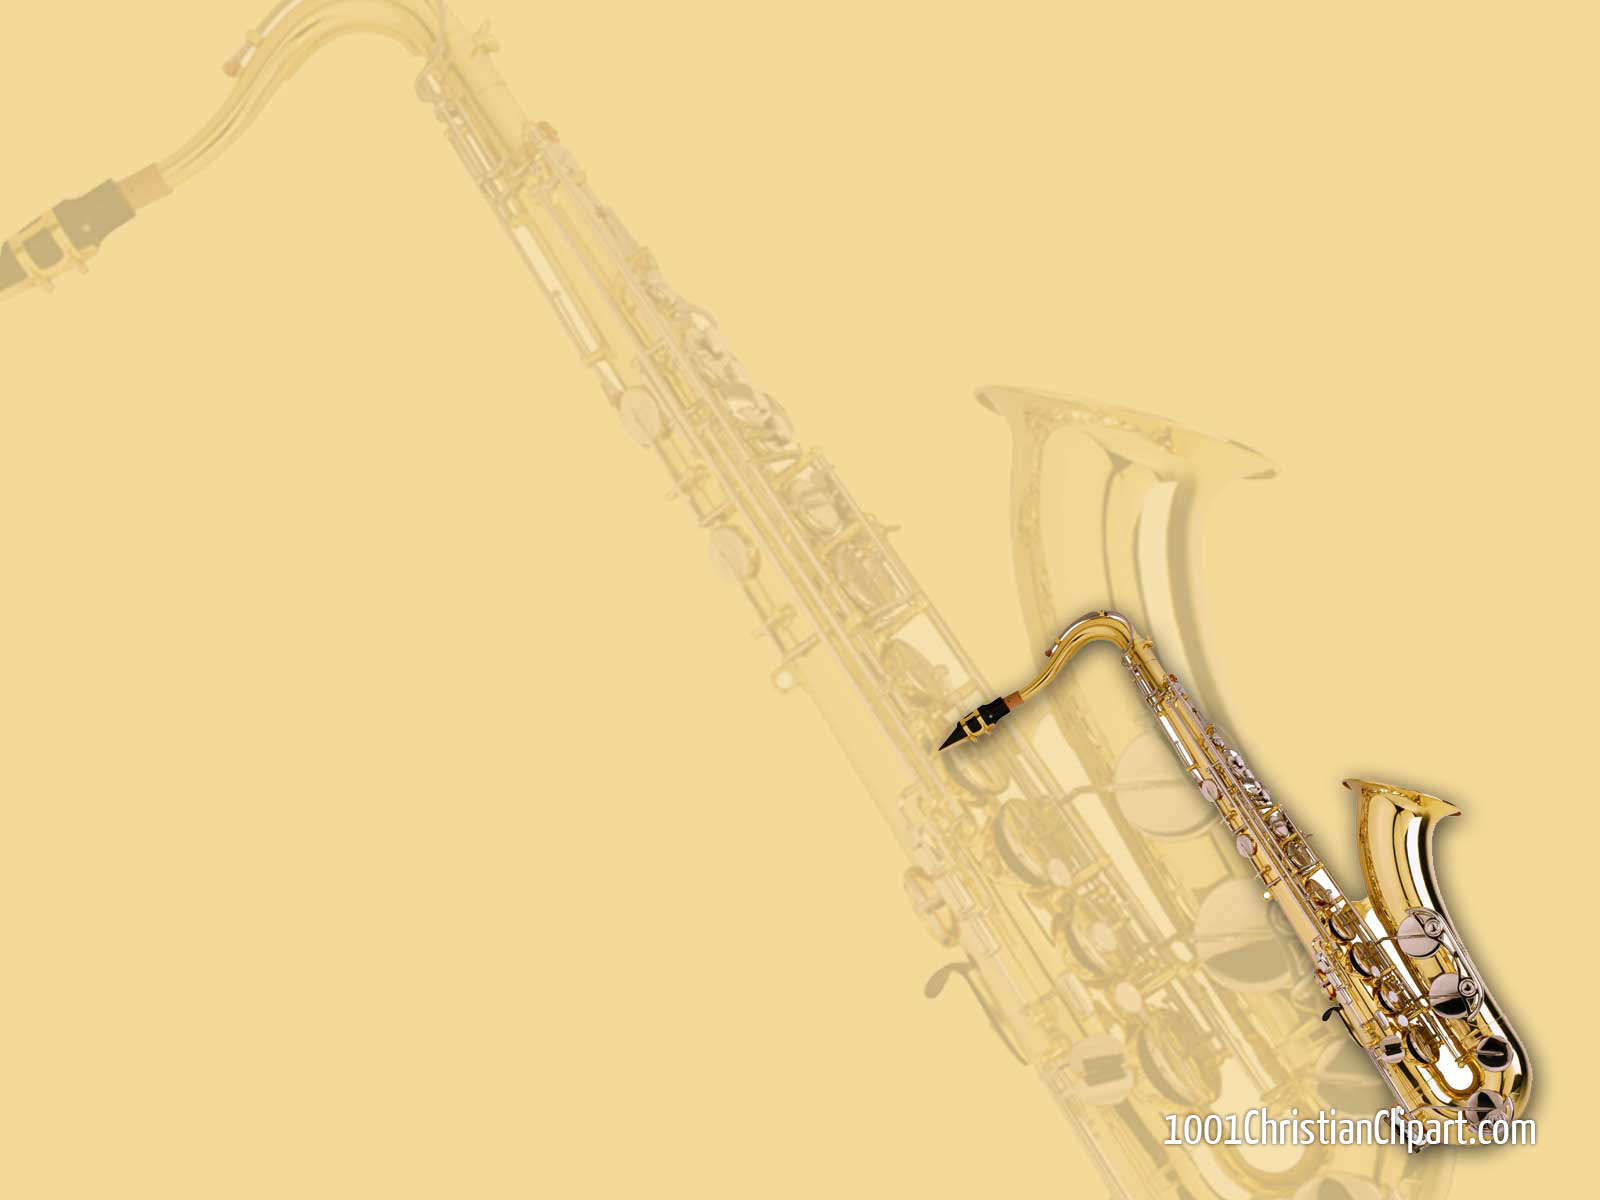 Musical Instrument / Trumpet theme, free download Powerpoint backgrounds and